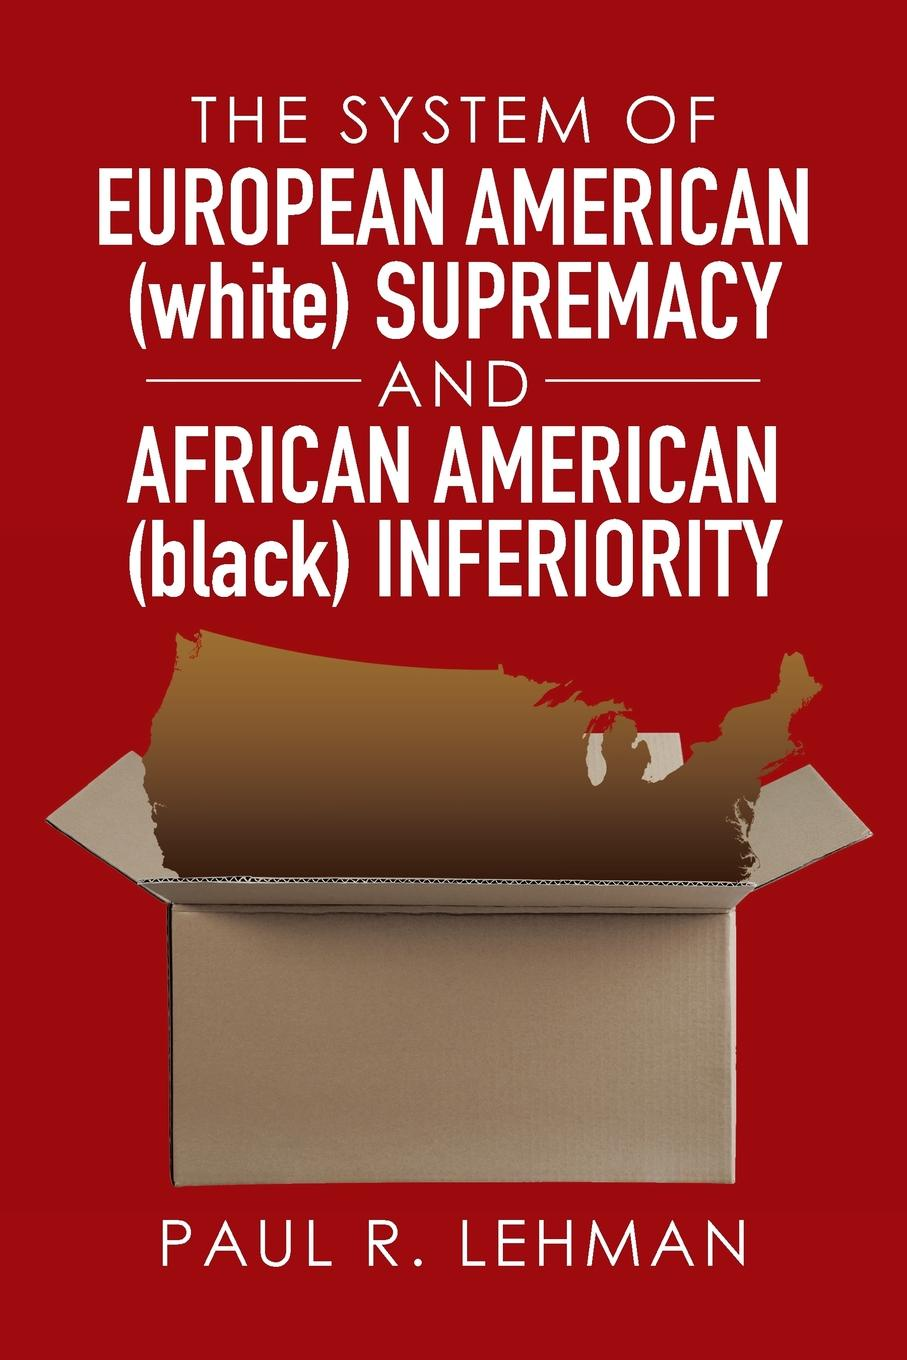 Paul R. Lehman The System of European American (white) Supremacy and African (black) Inferiority